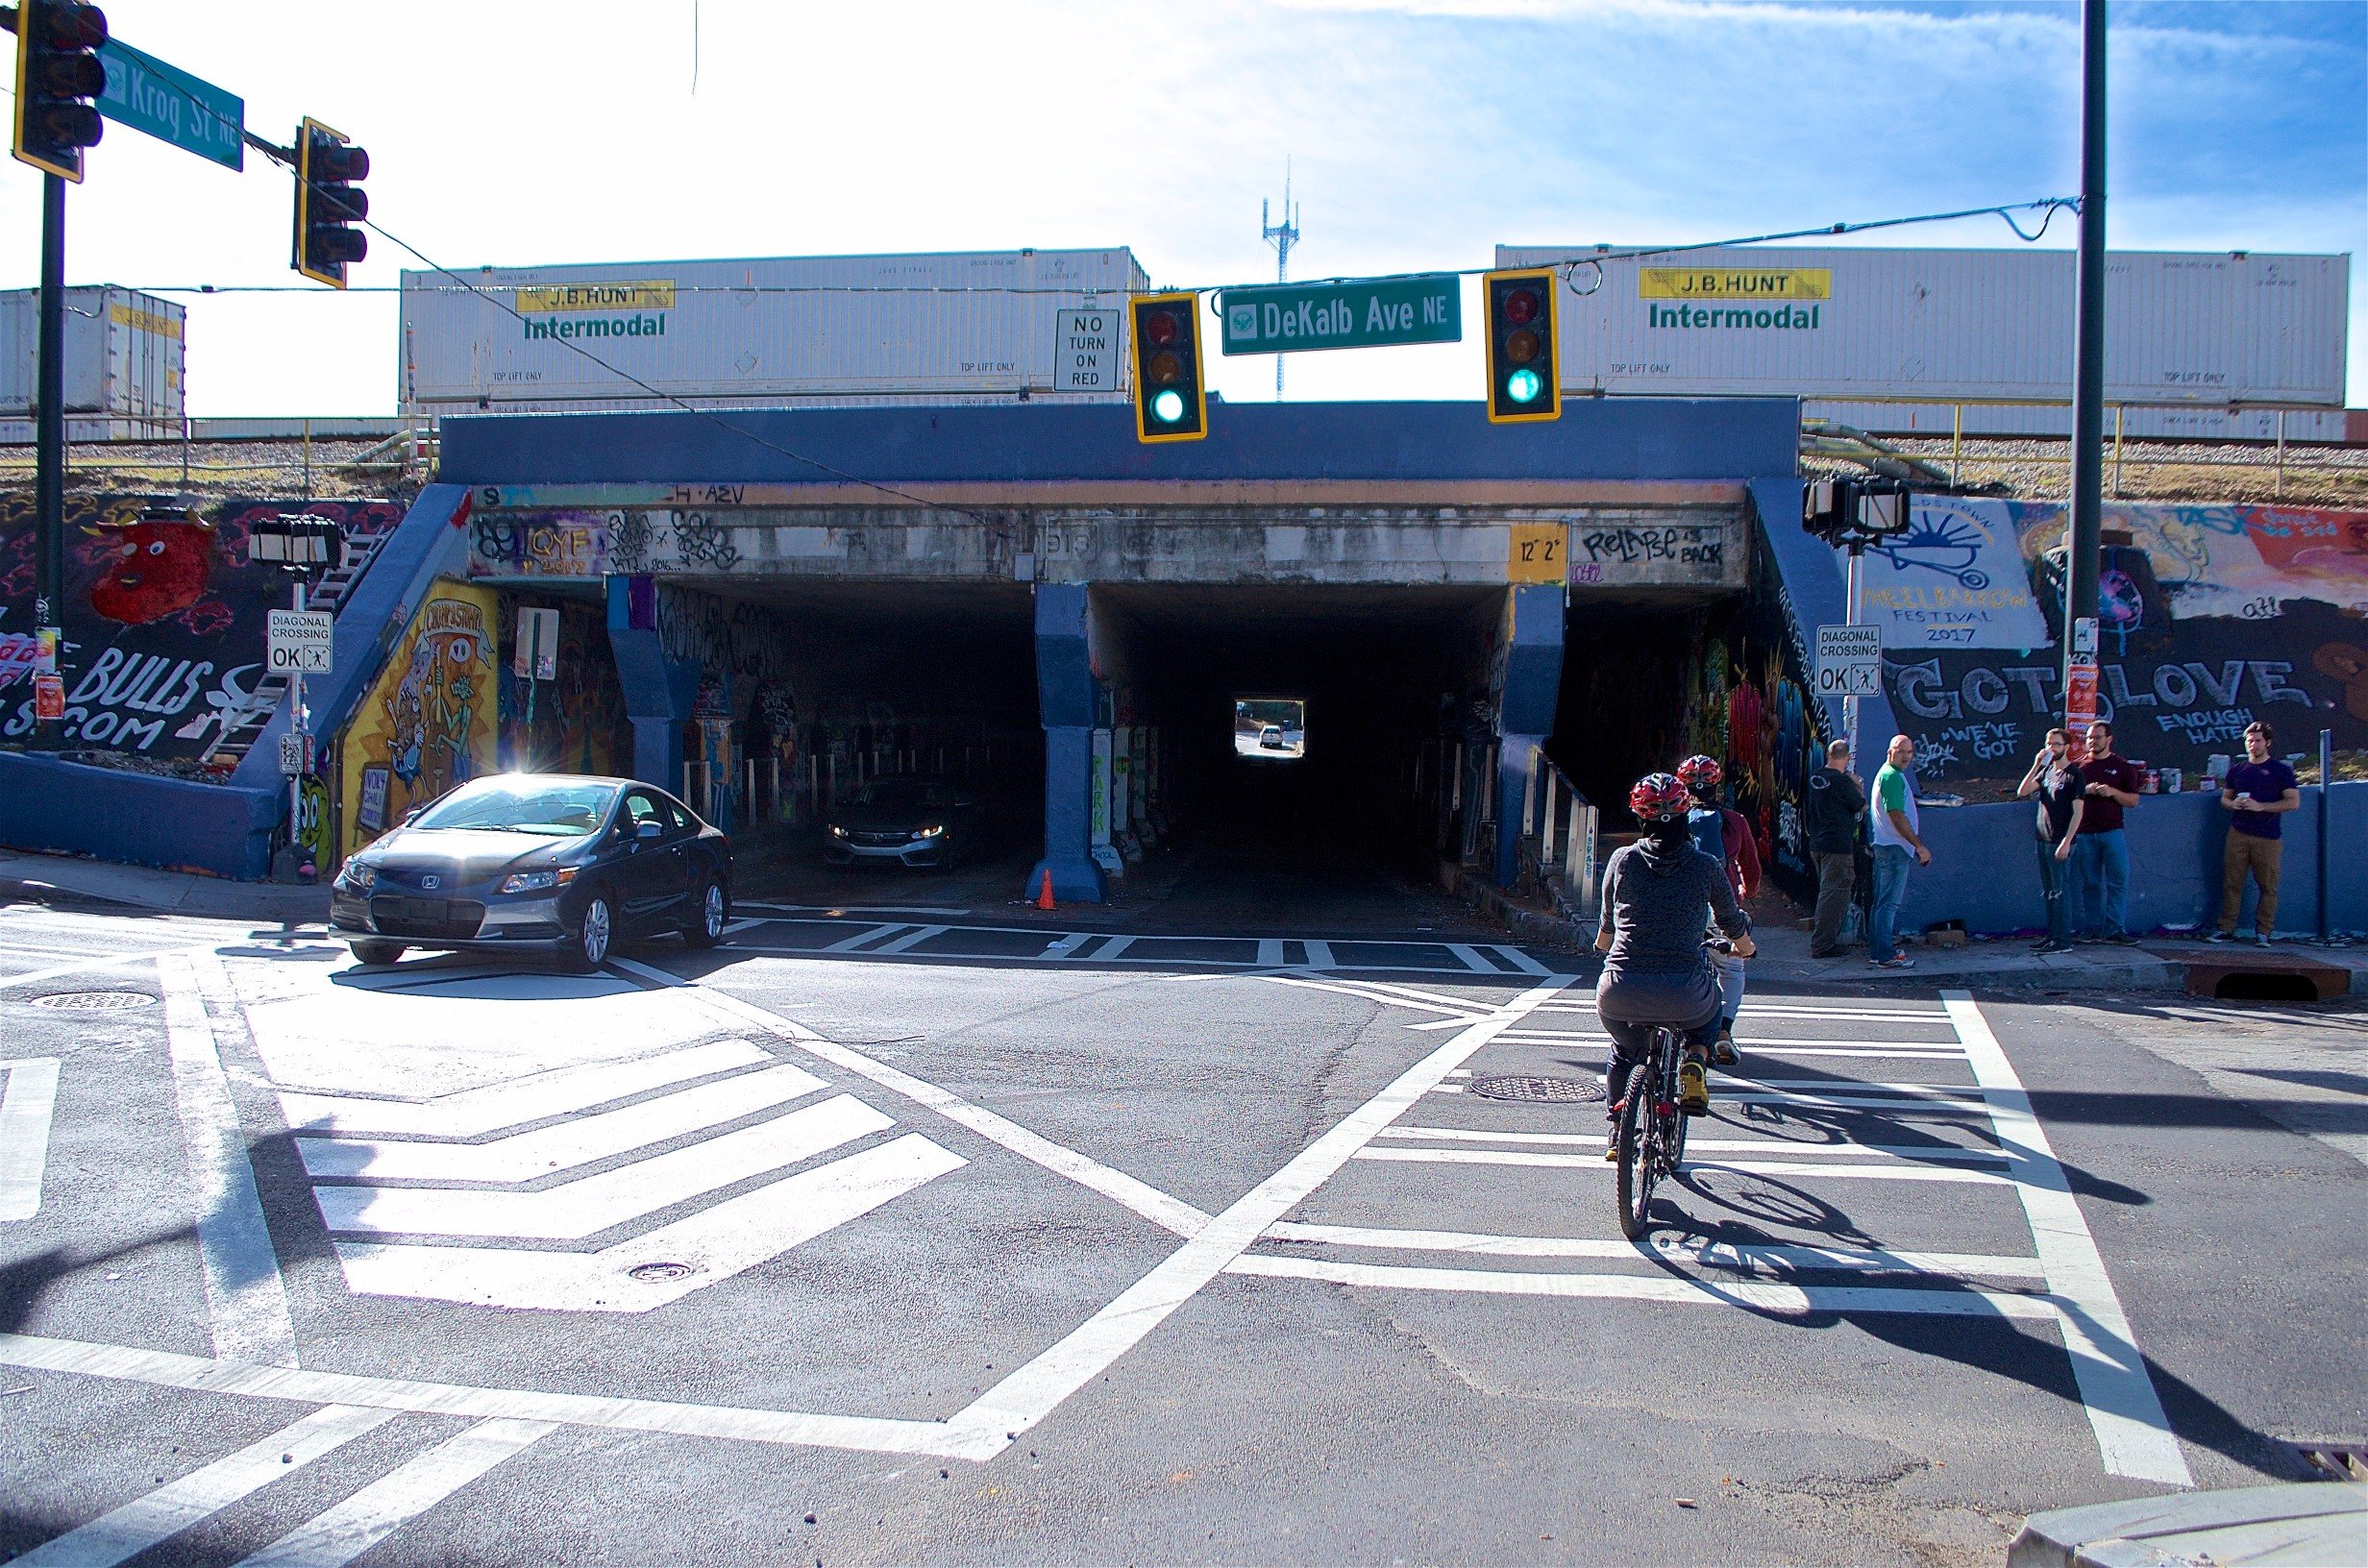 A photo of the intersection of DeKalb Avenue and Krog Street, where multidirectional crossing signals are now a thing.